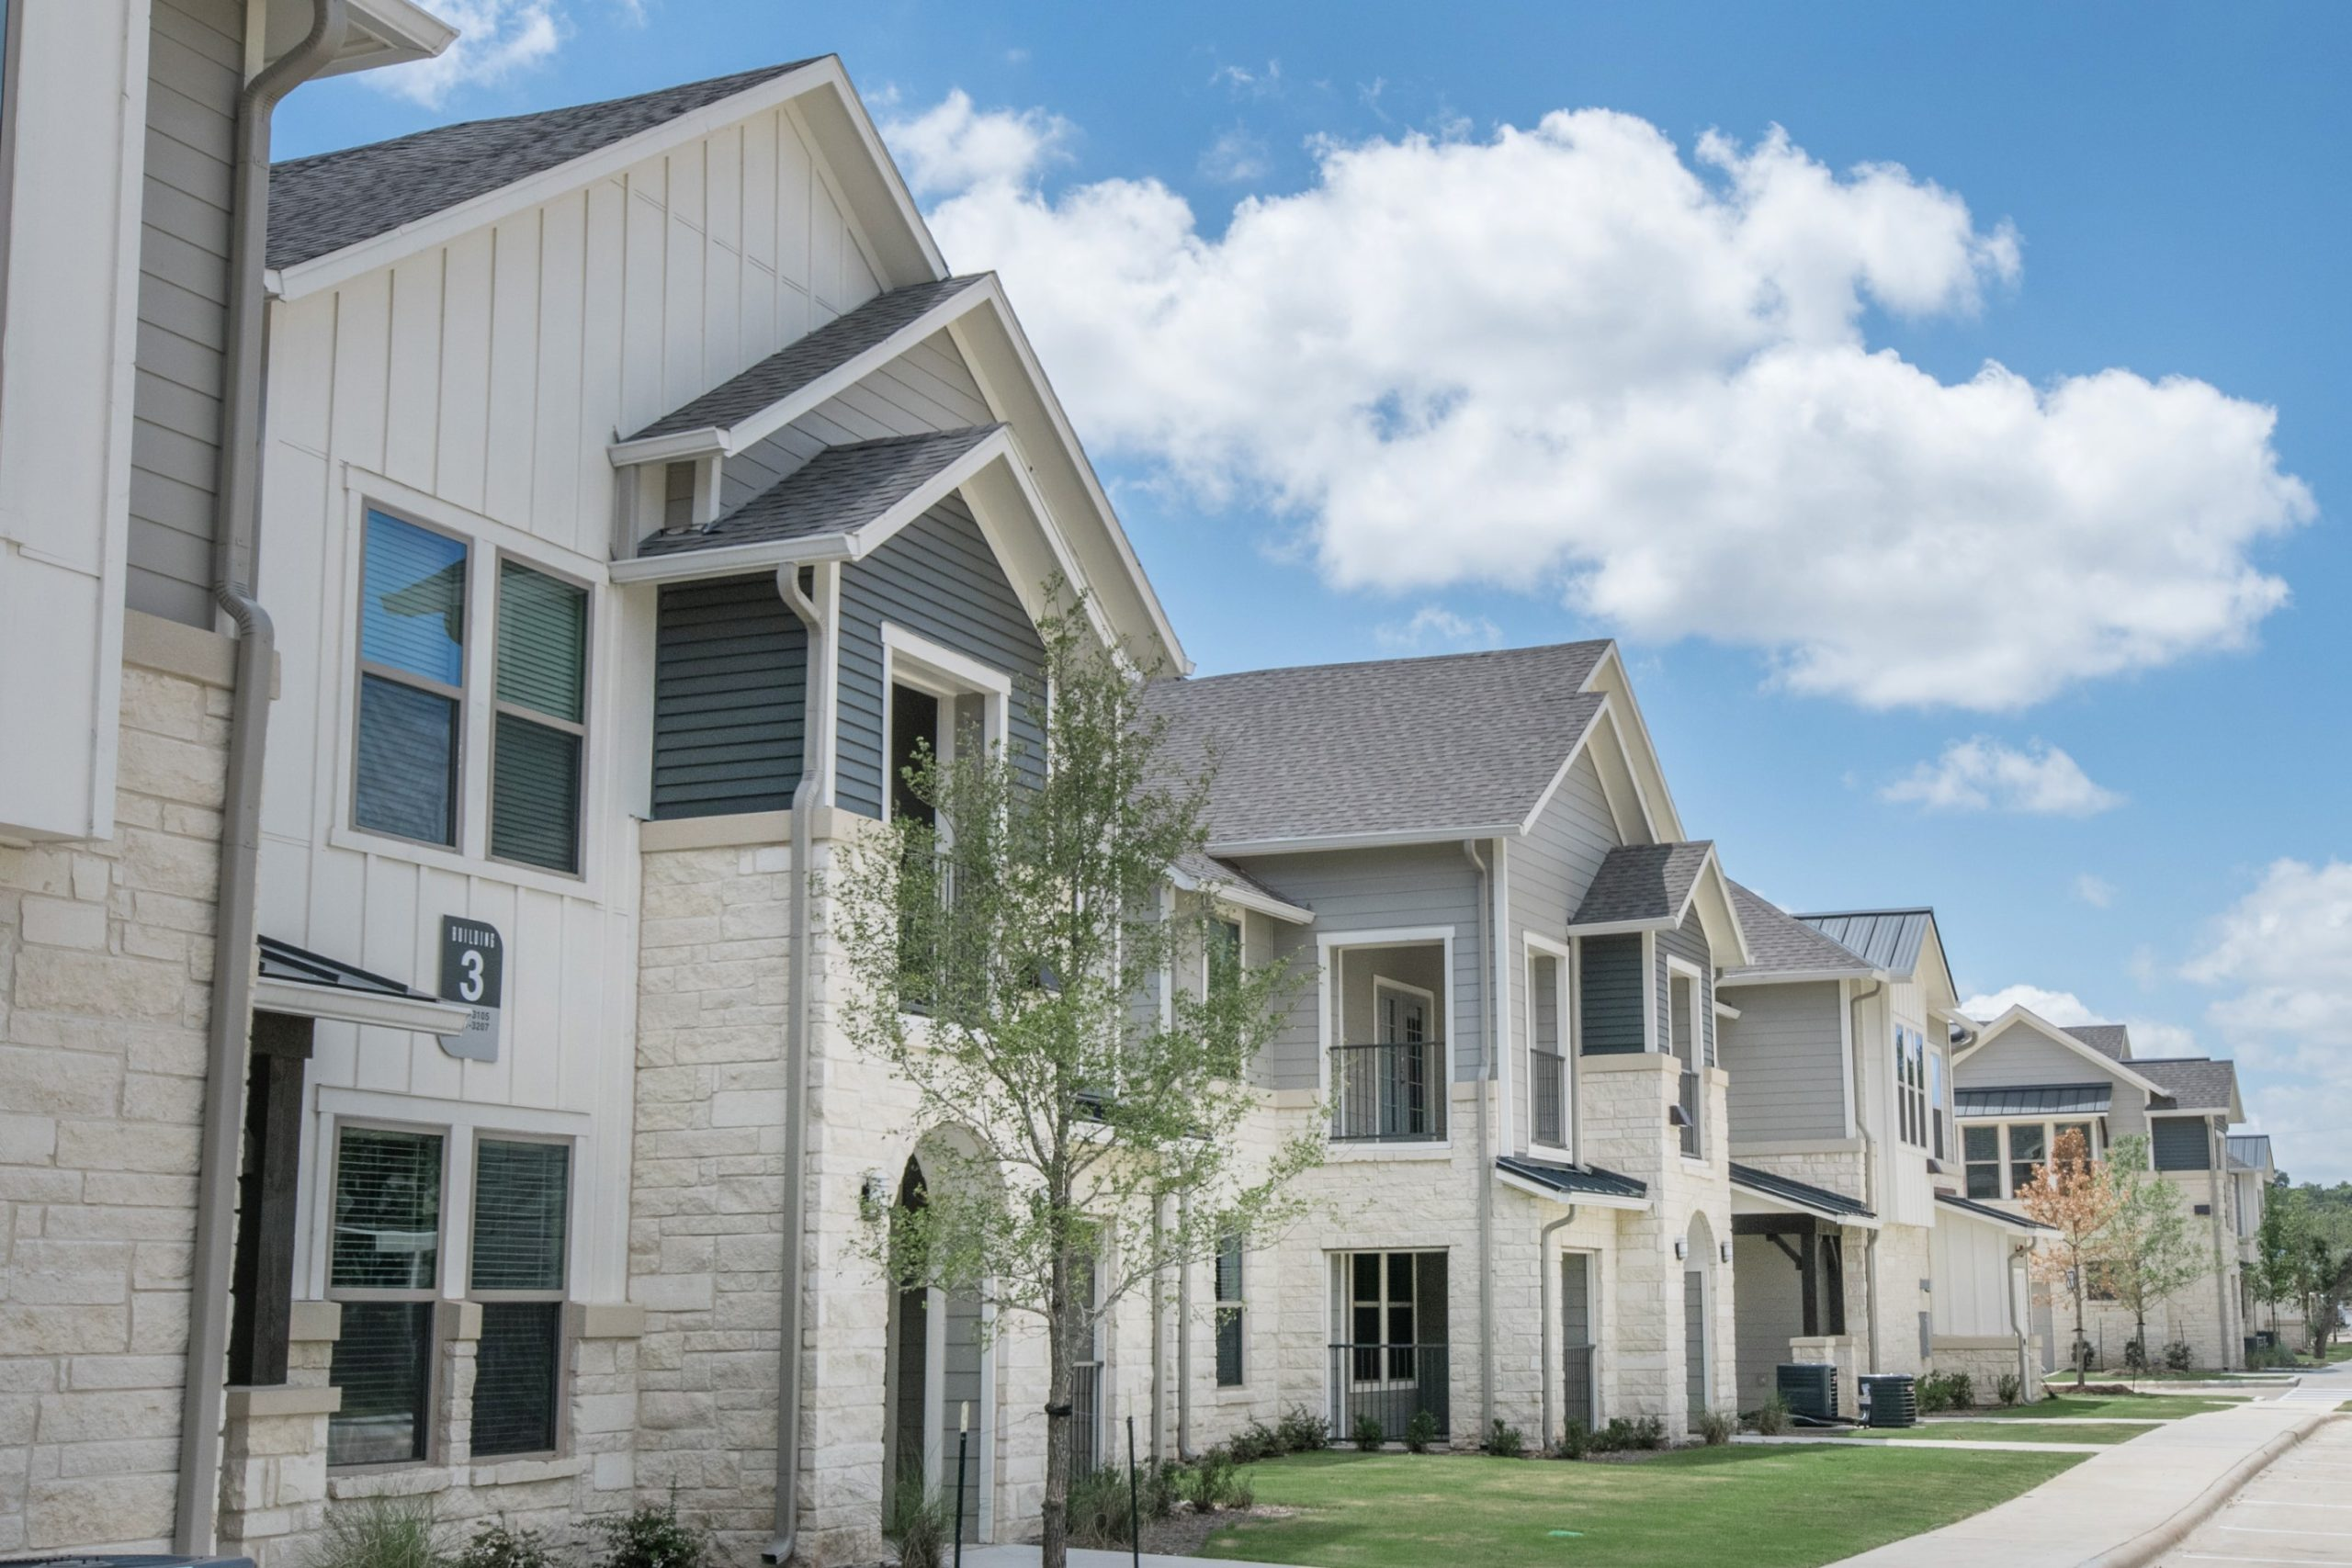 Tips For First-Time Apartment Renters